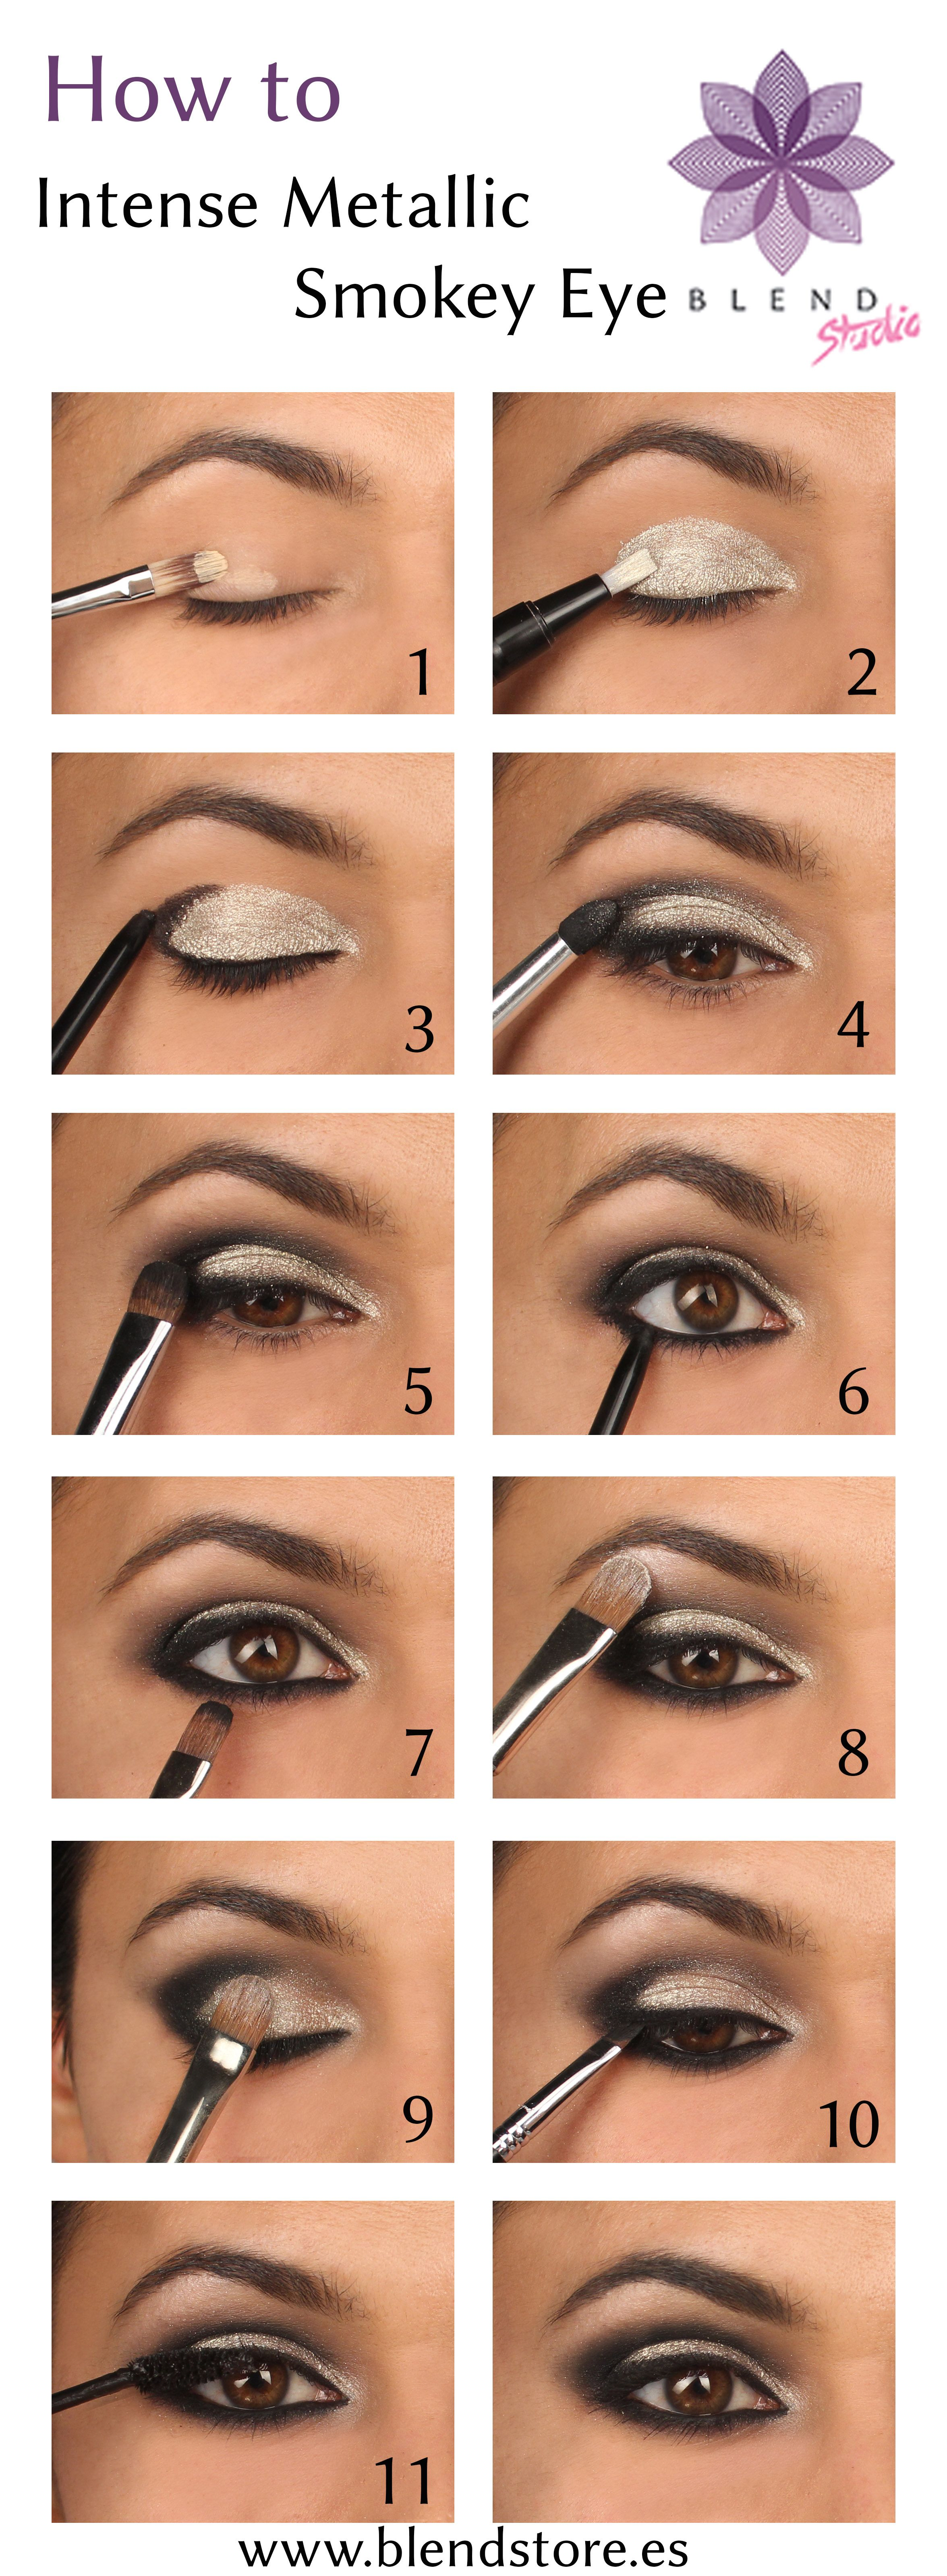 How To Create A Sparkly Intense Metallic Smokey Eye Great Christmas Look